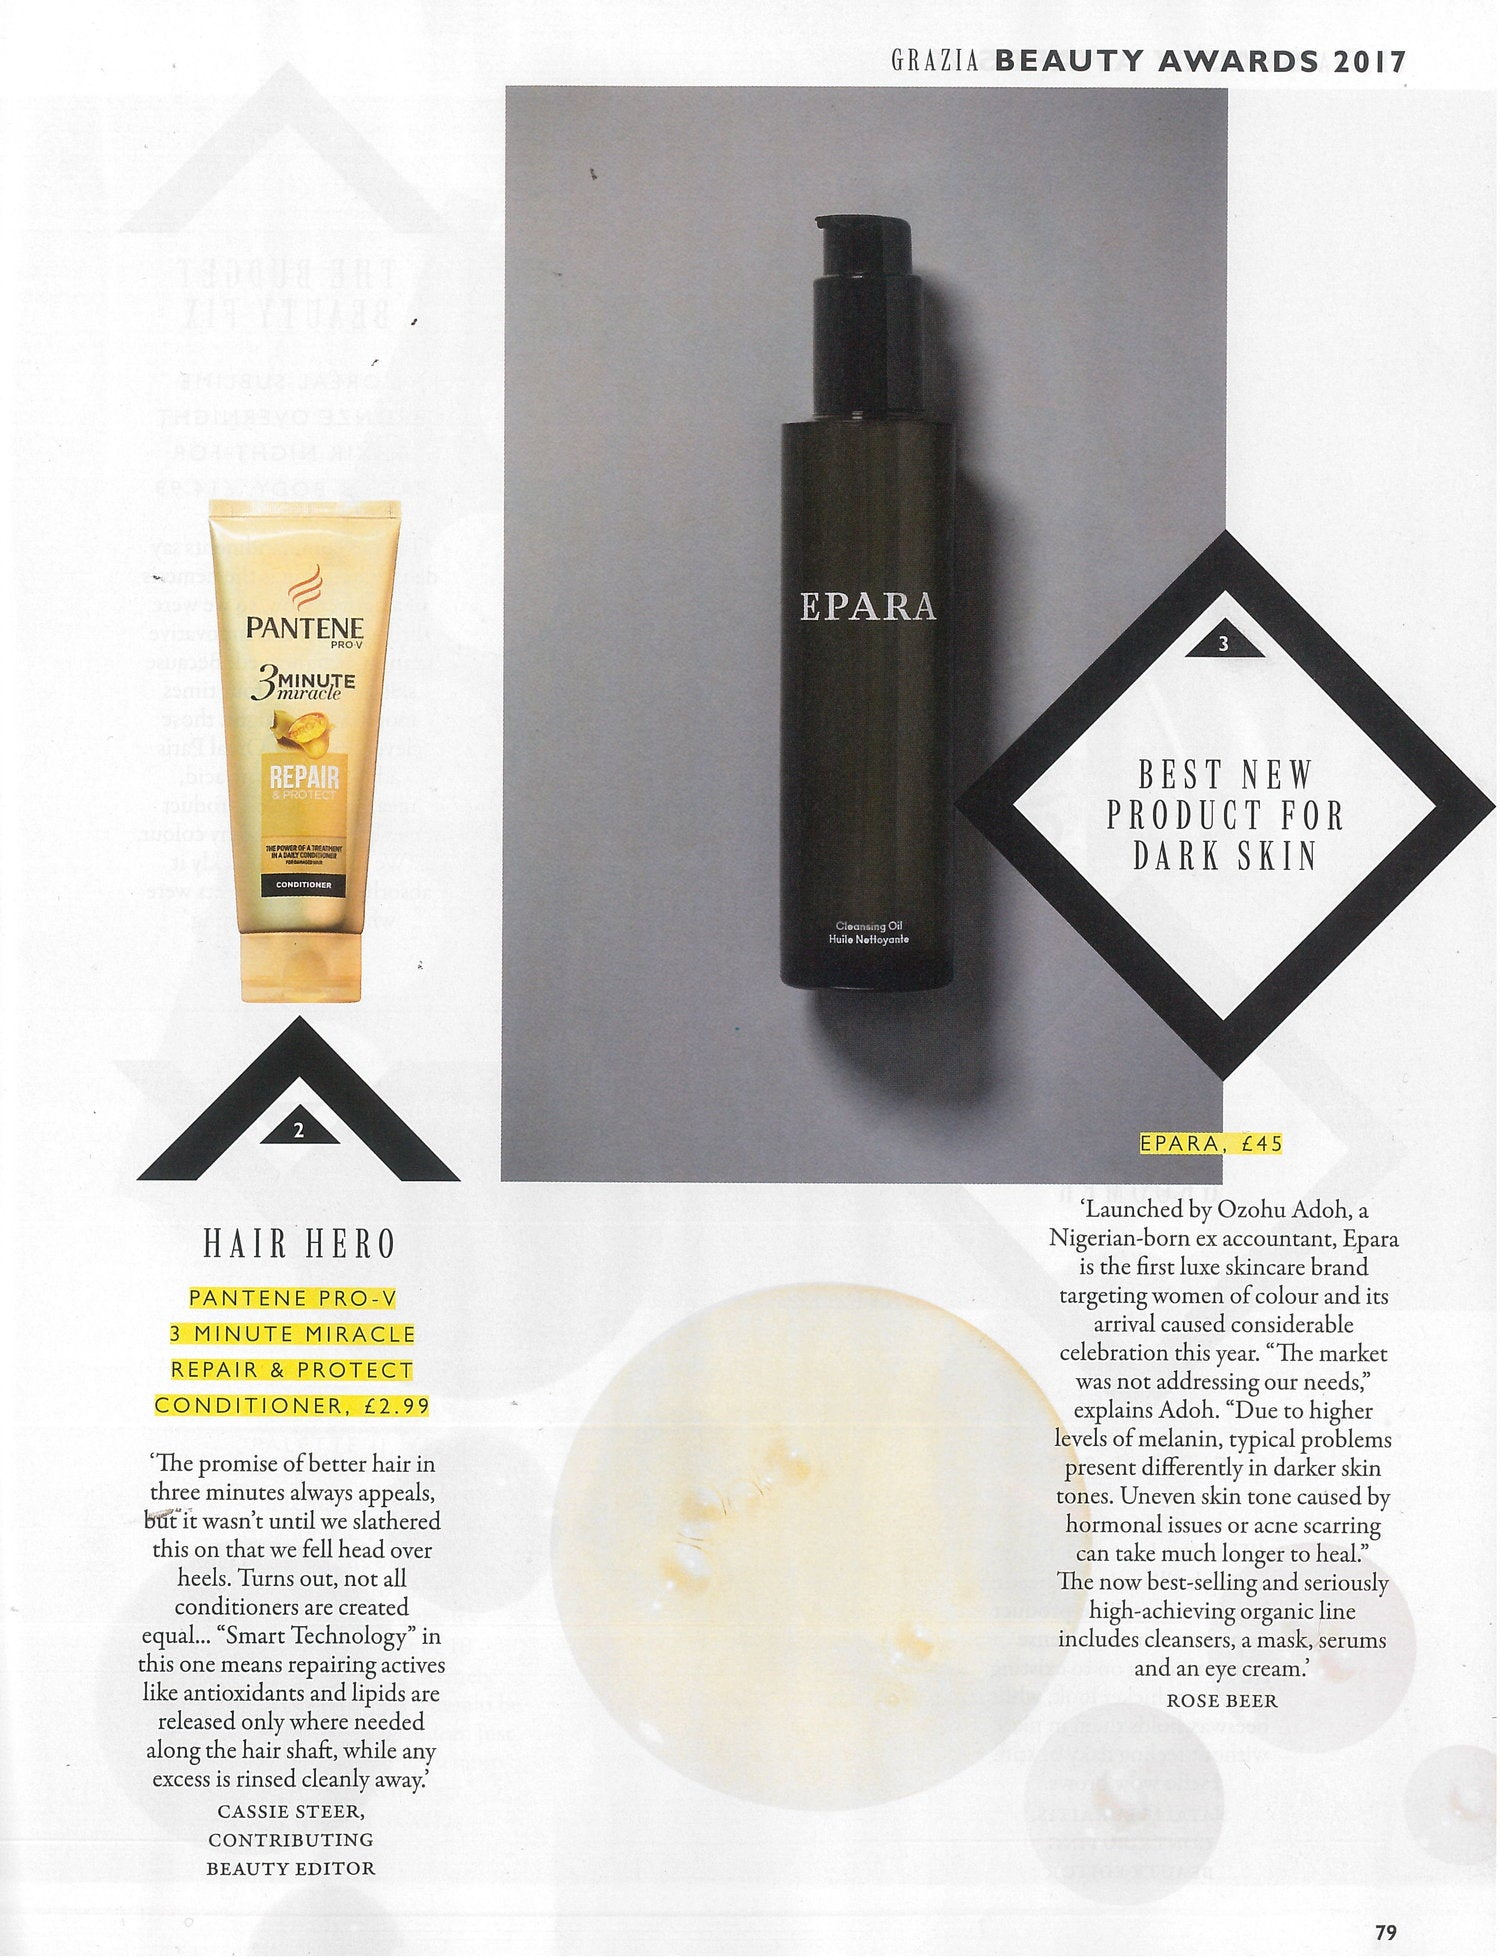 Cleansing Oil - Award Winning Skincare - Grazia Magazine